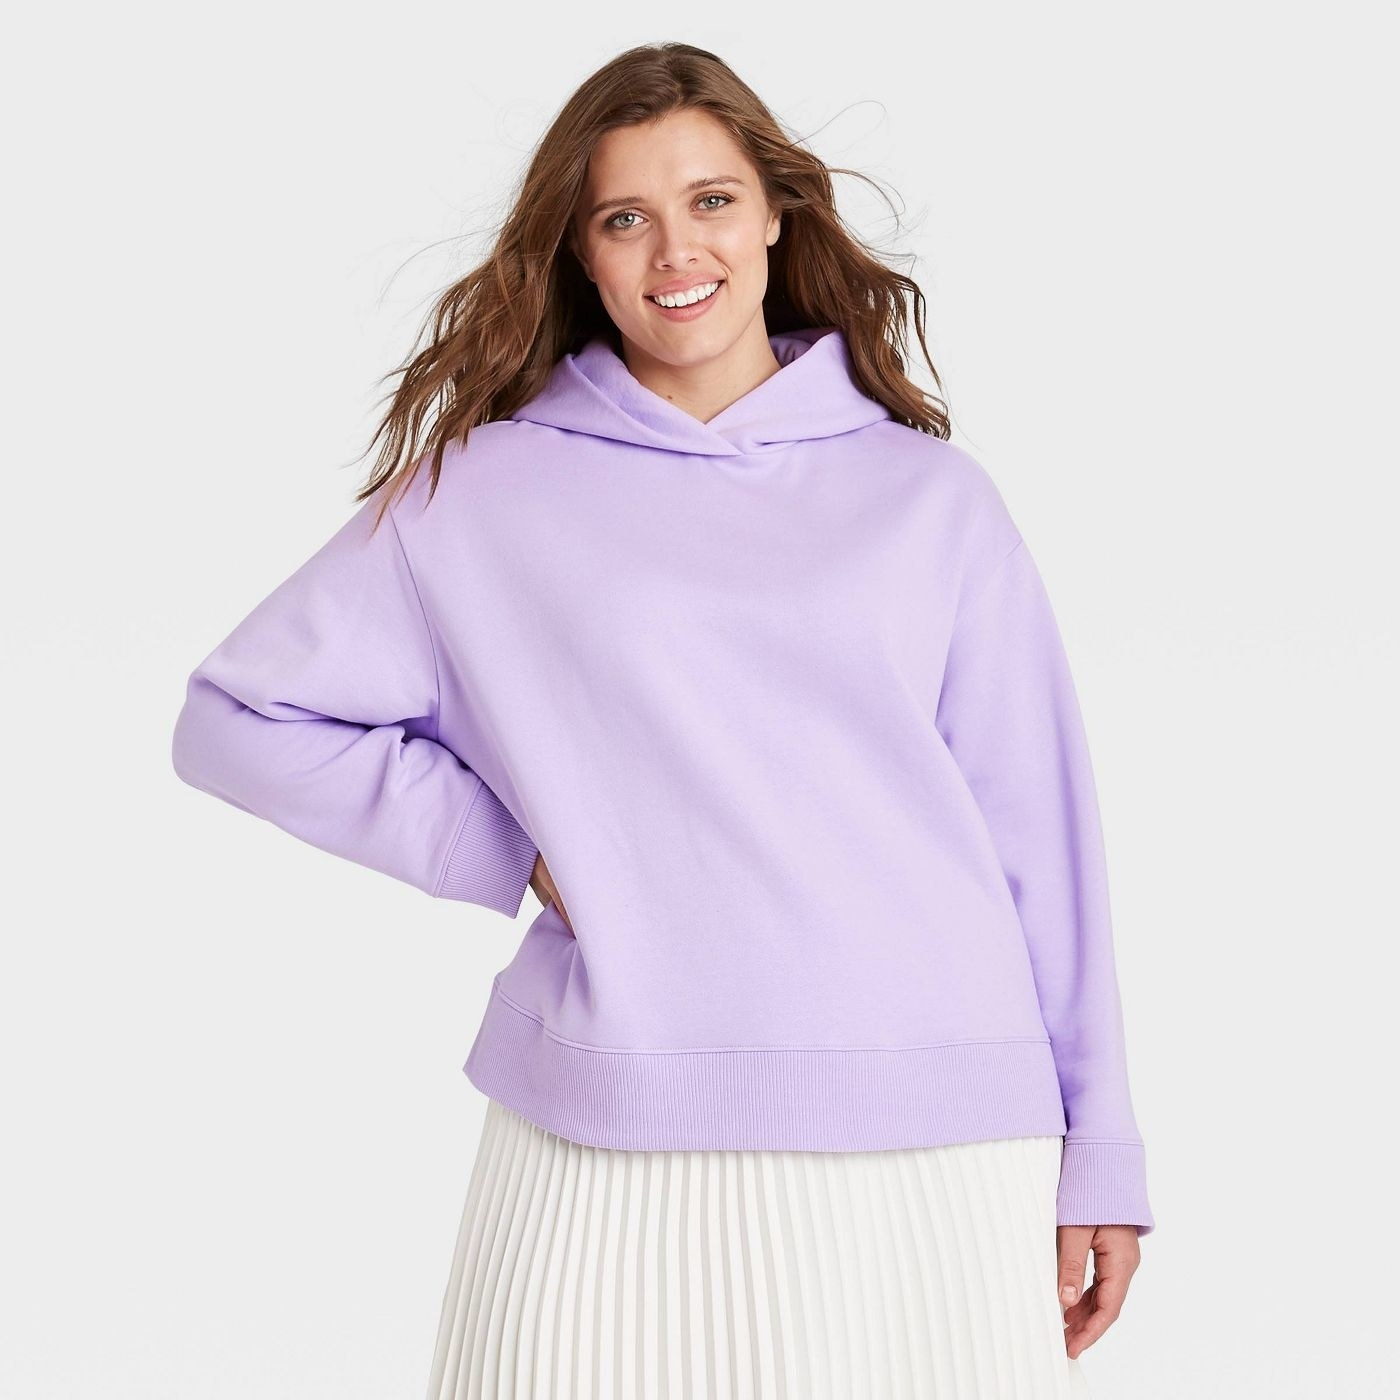 model wearing the hoodie in lilac